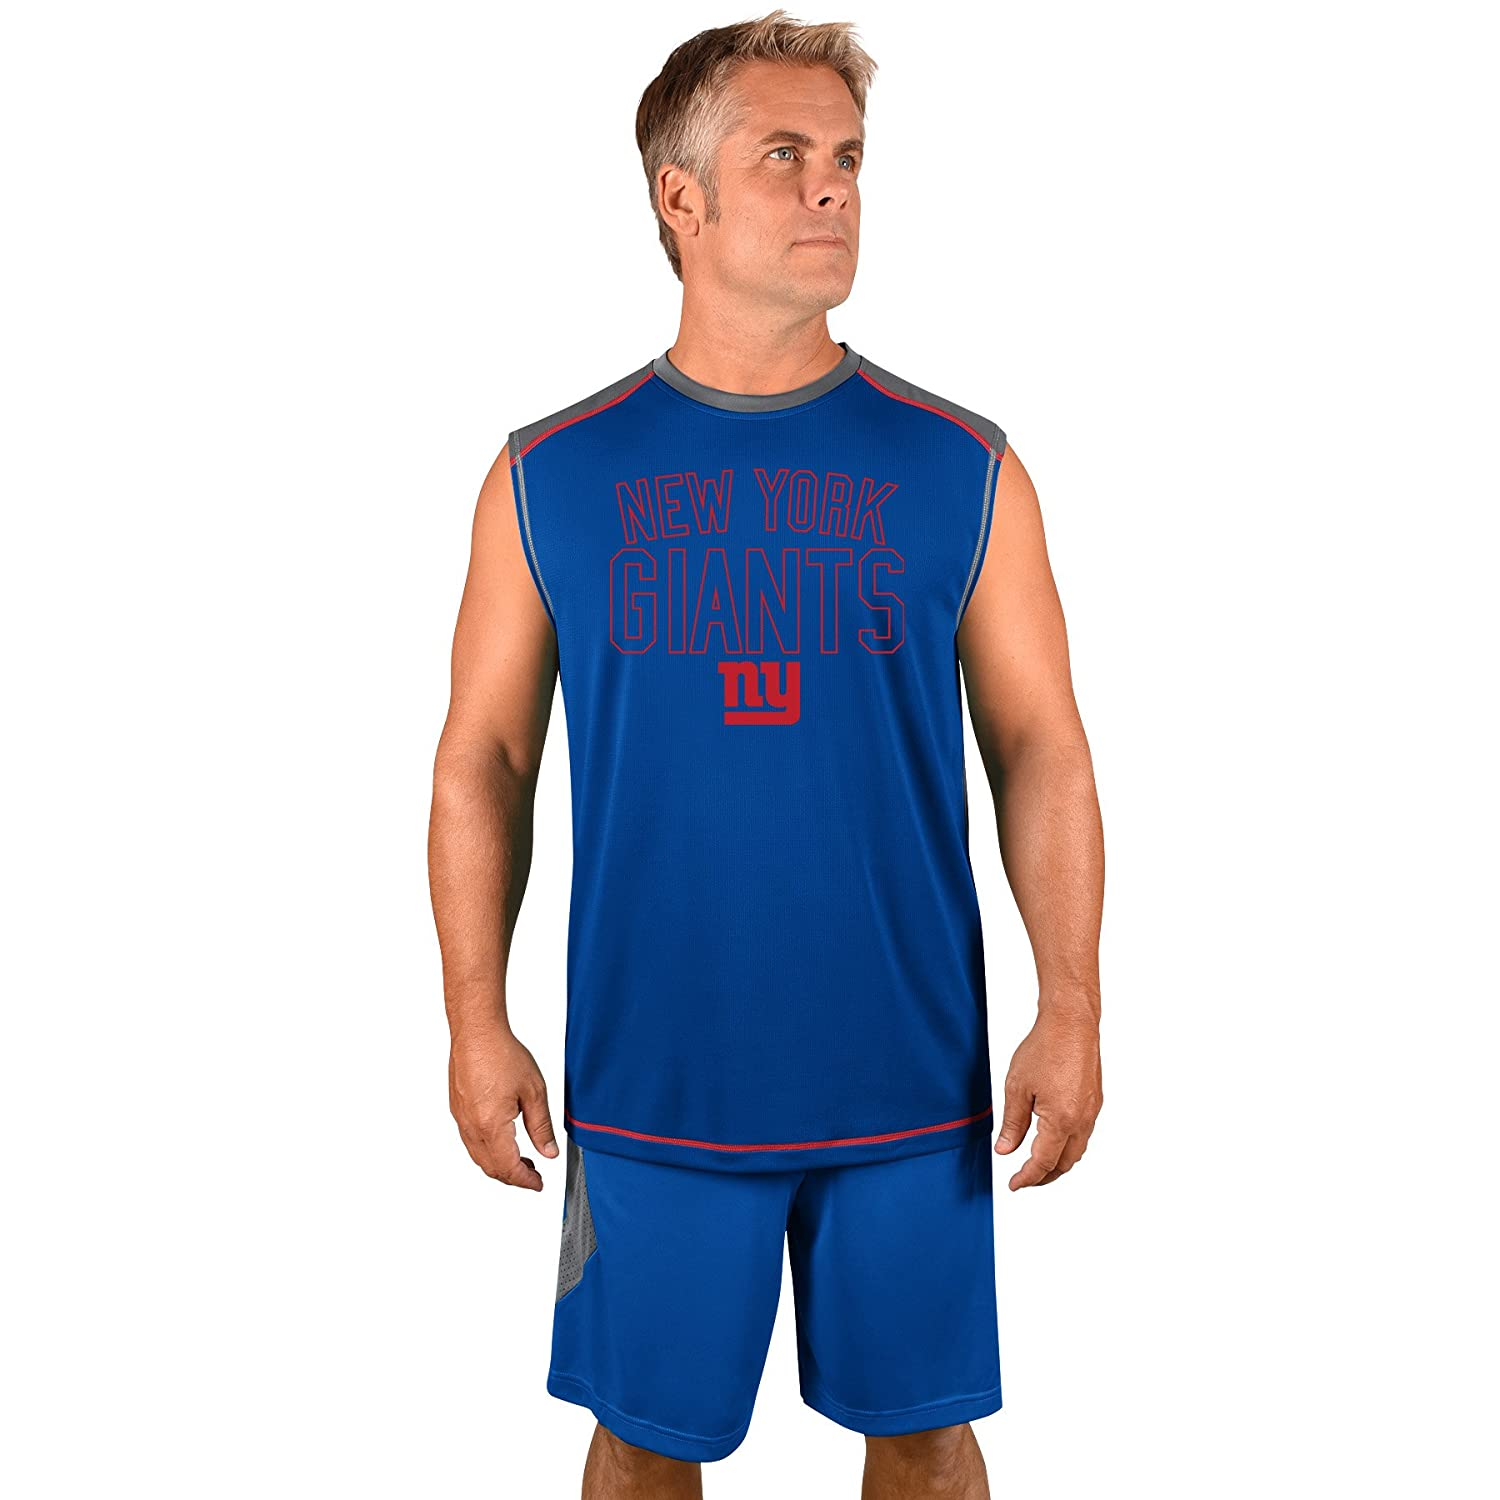 Profile Big Tall NFL New York Giants Adult Men NFL Plus S Synthetic Muscle 2X Storm Grey Royal